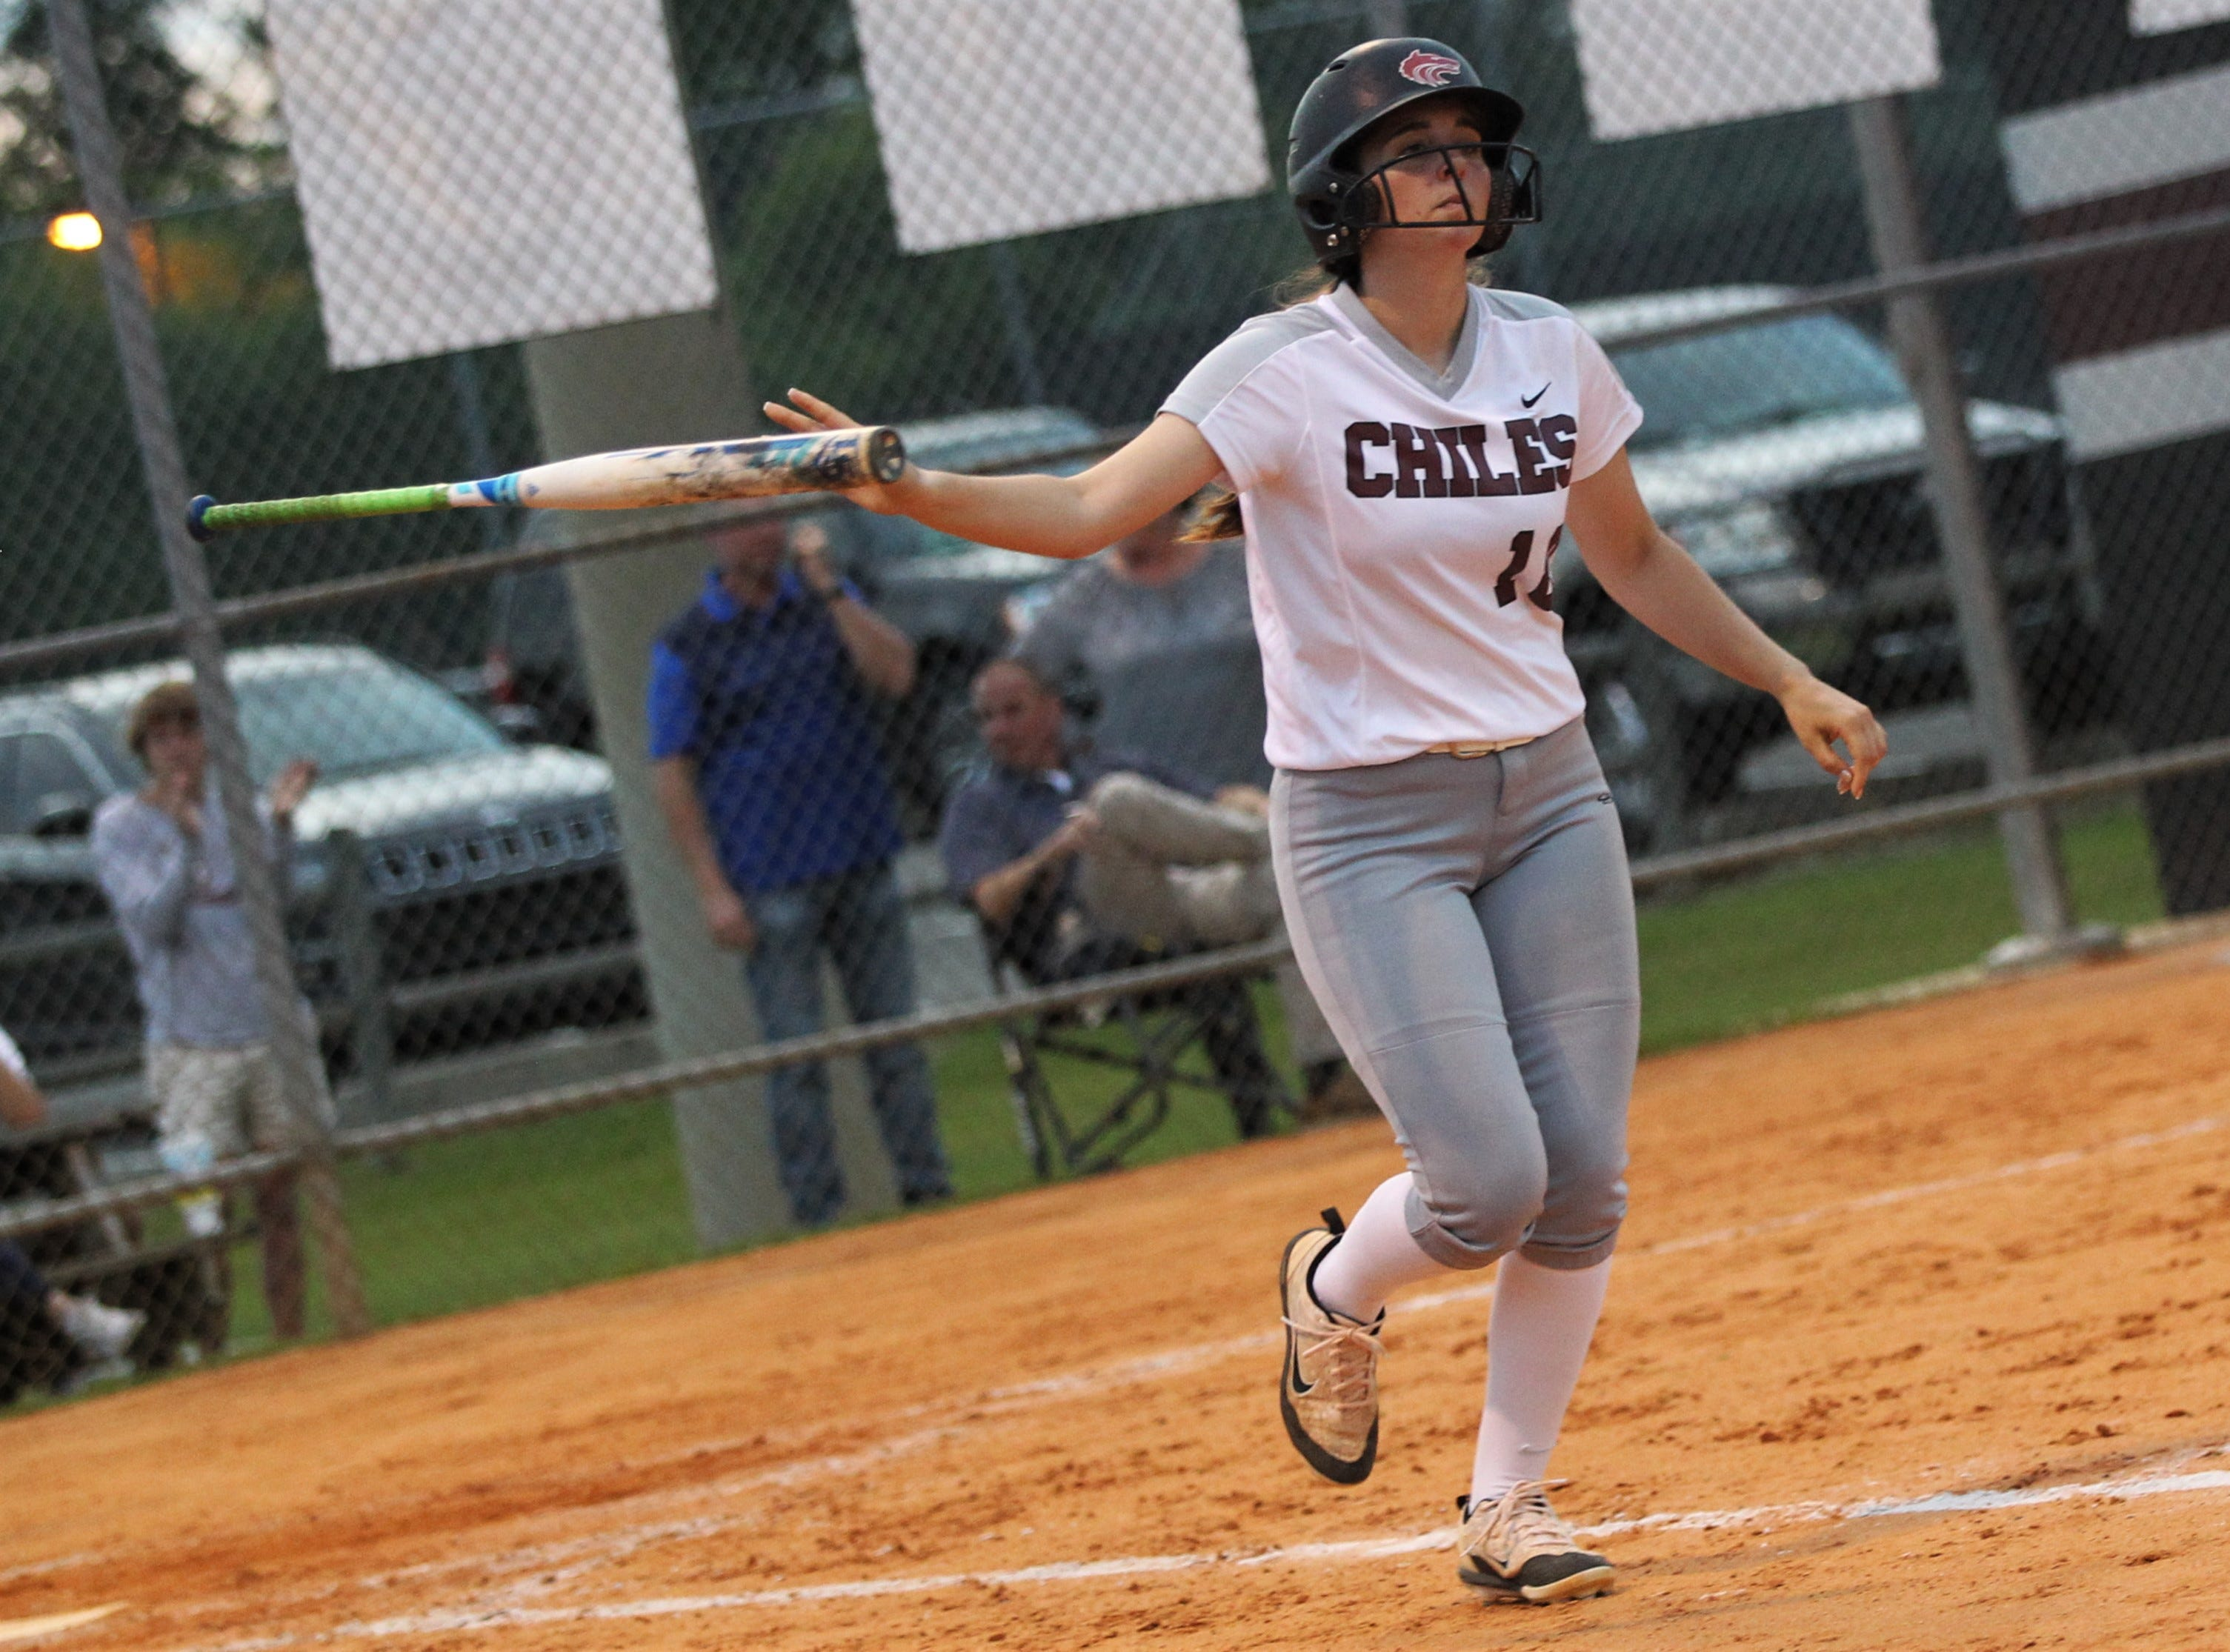 Chiles junior Megan Monk bat flips after a walk as the Timberwolves beat Atlantic Coast 6-4 during a Region 1-8A quarterfinal softball game on Wednesday, May 8, 2019.